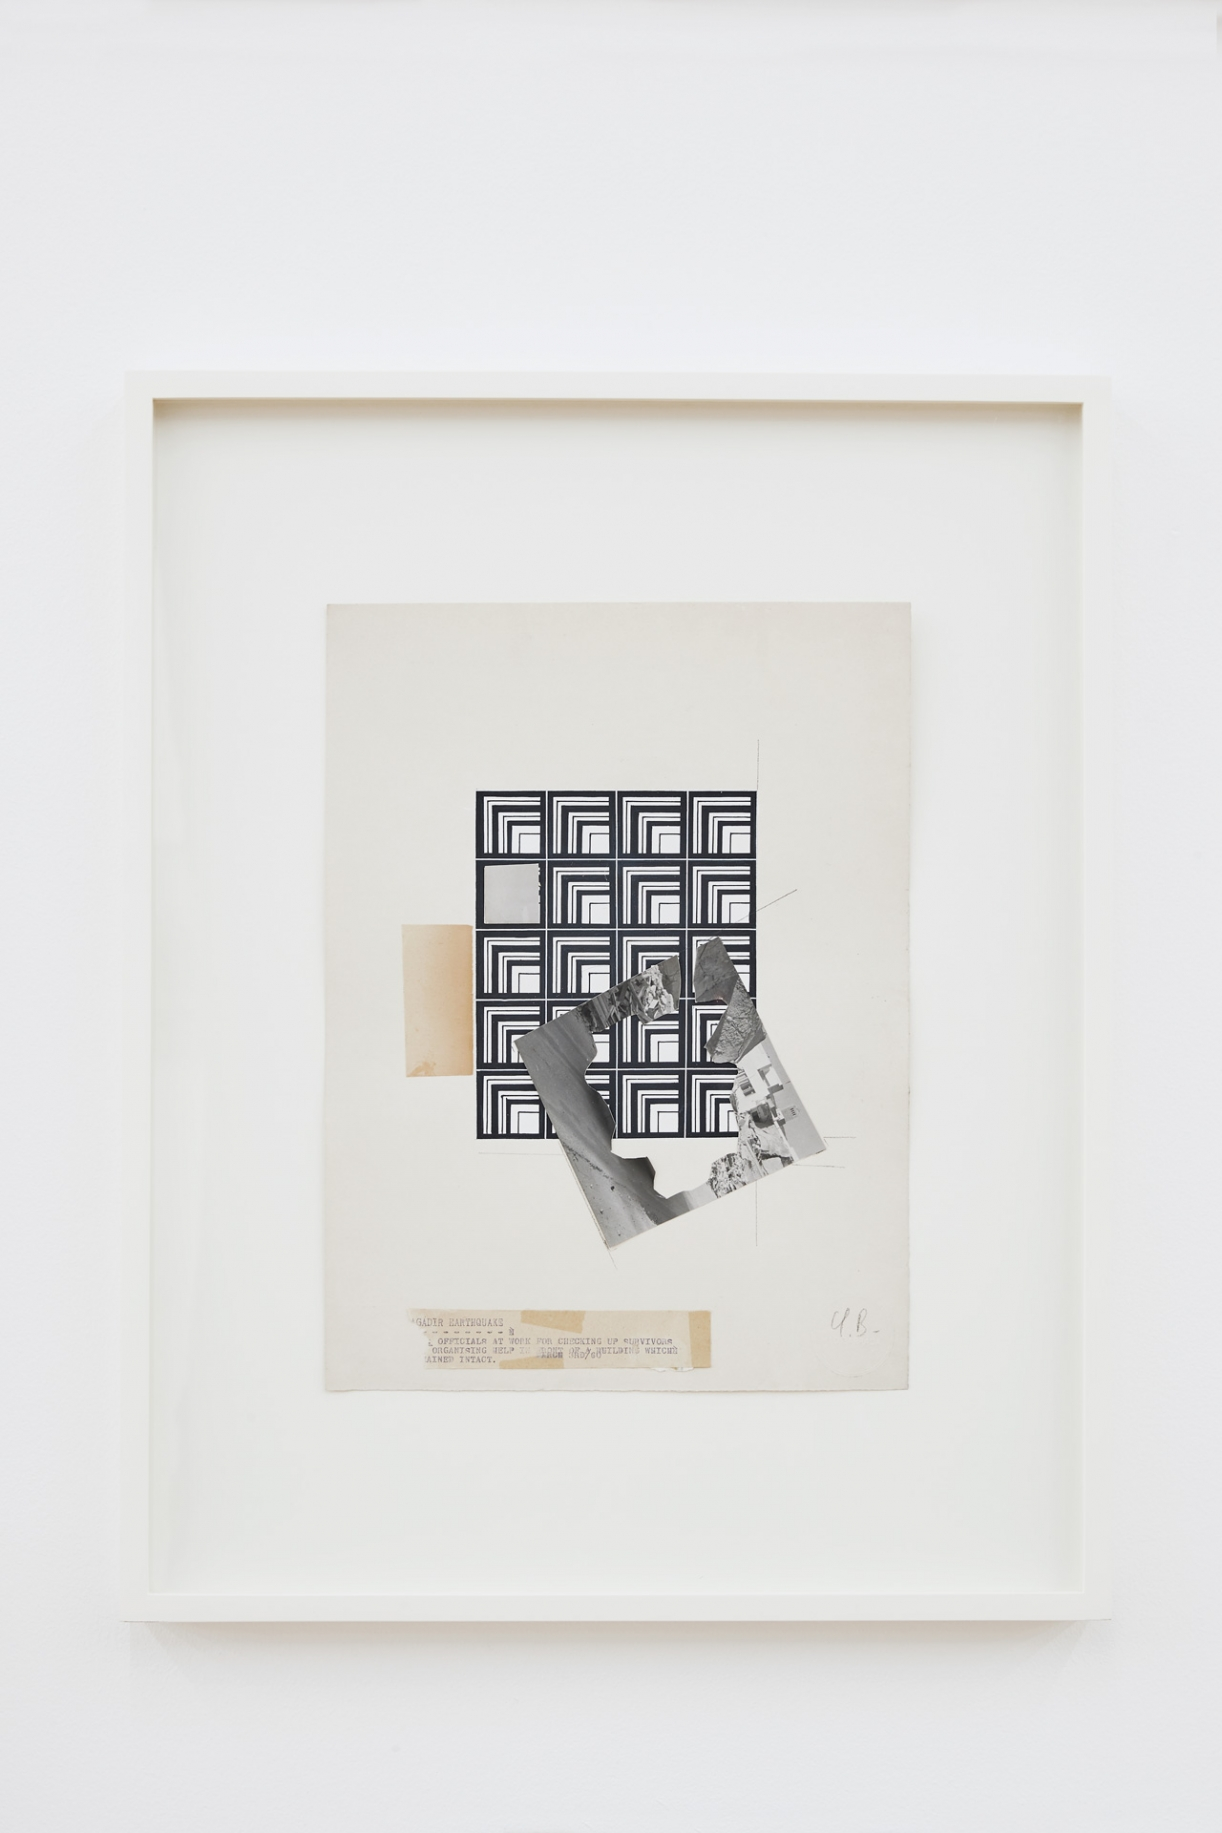 Untitled (collages), 2018, gouache, pencil, textile cut and pasted photographs, paper on paper, 57.5 x 48.5 x 4 cm